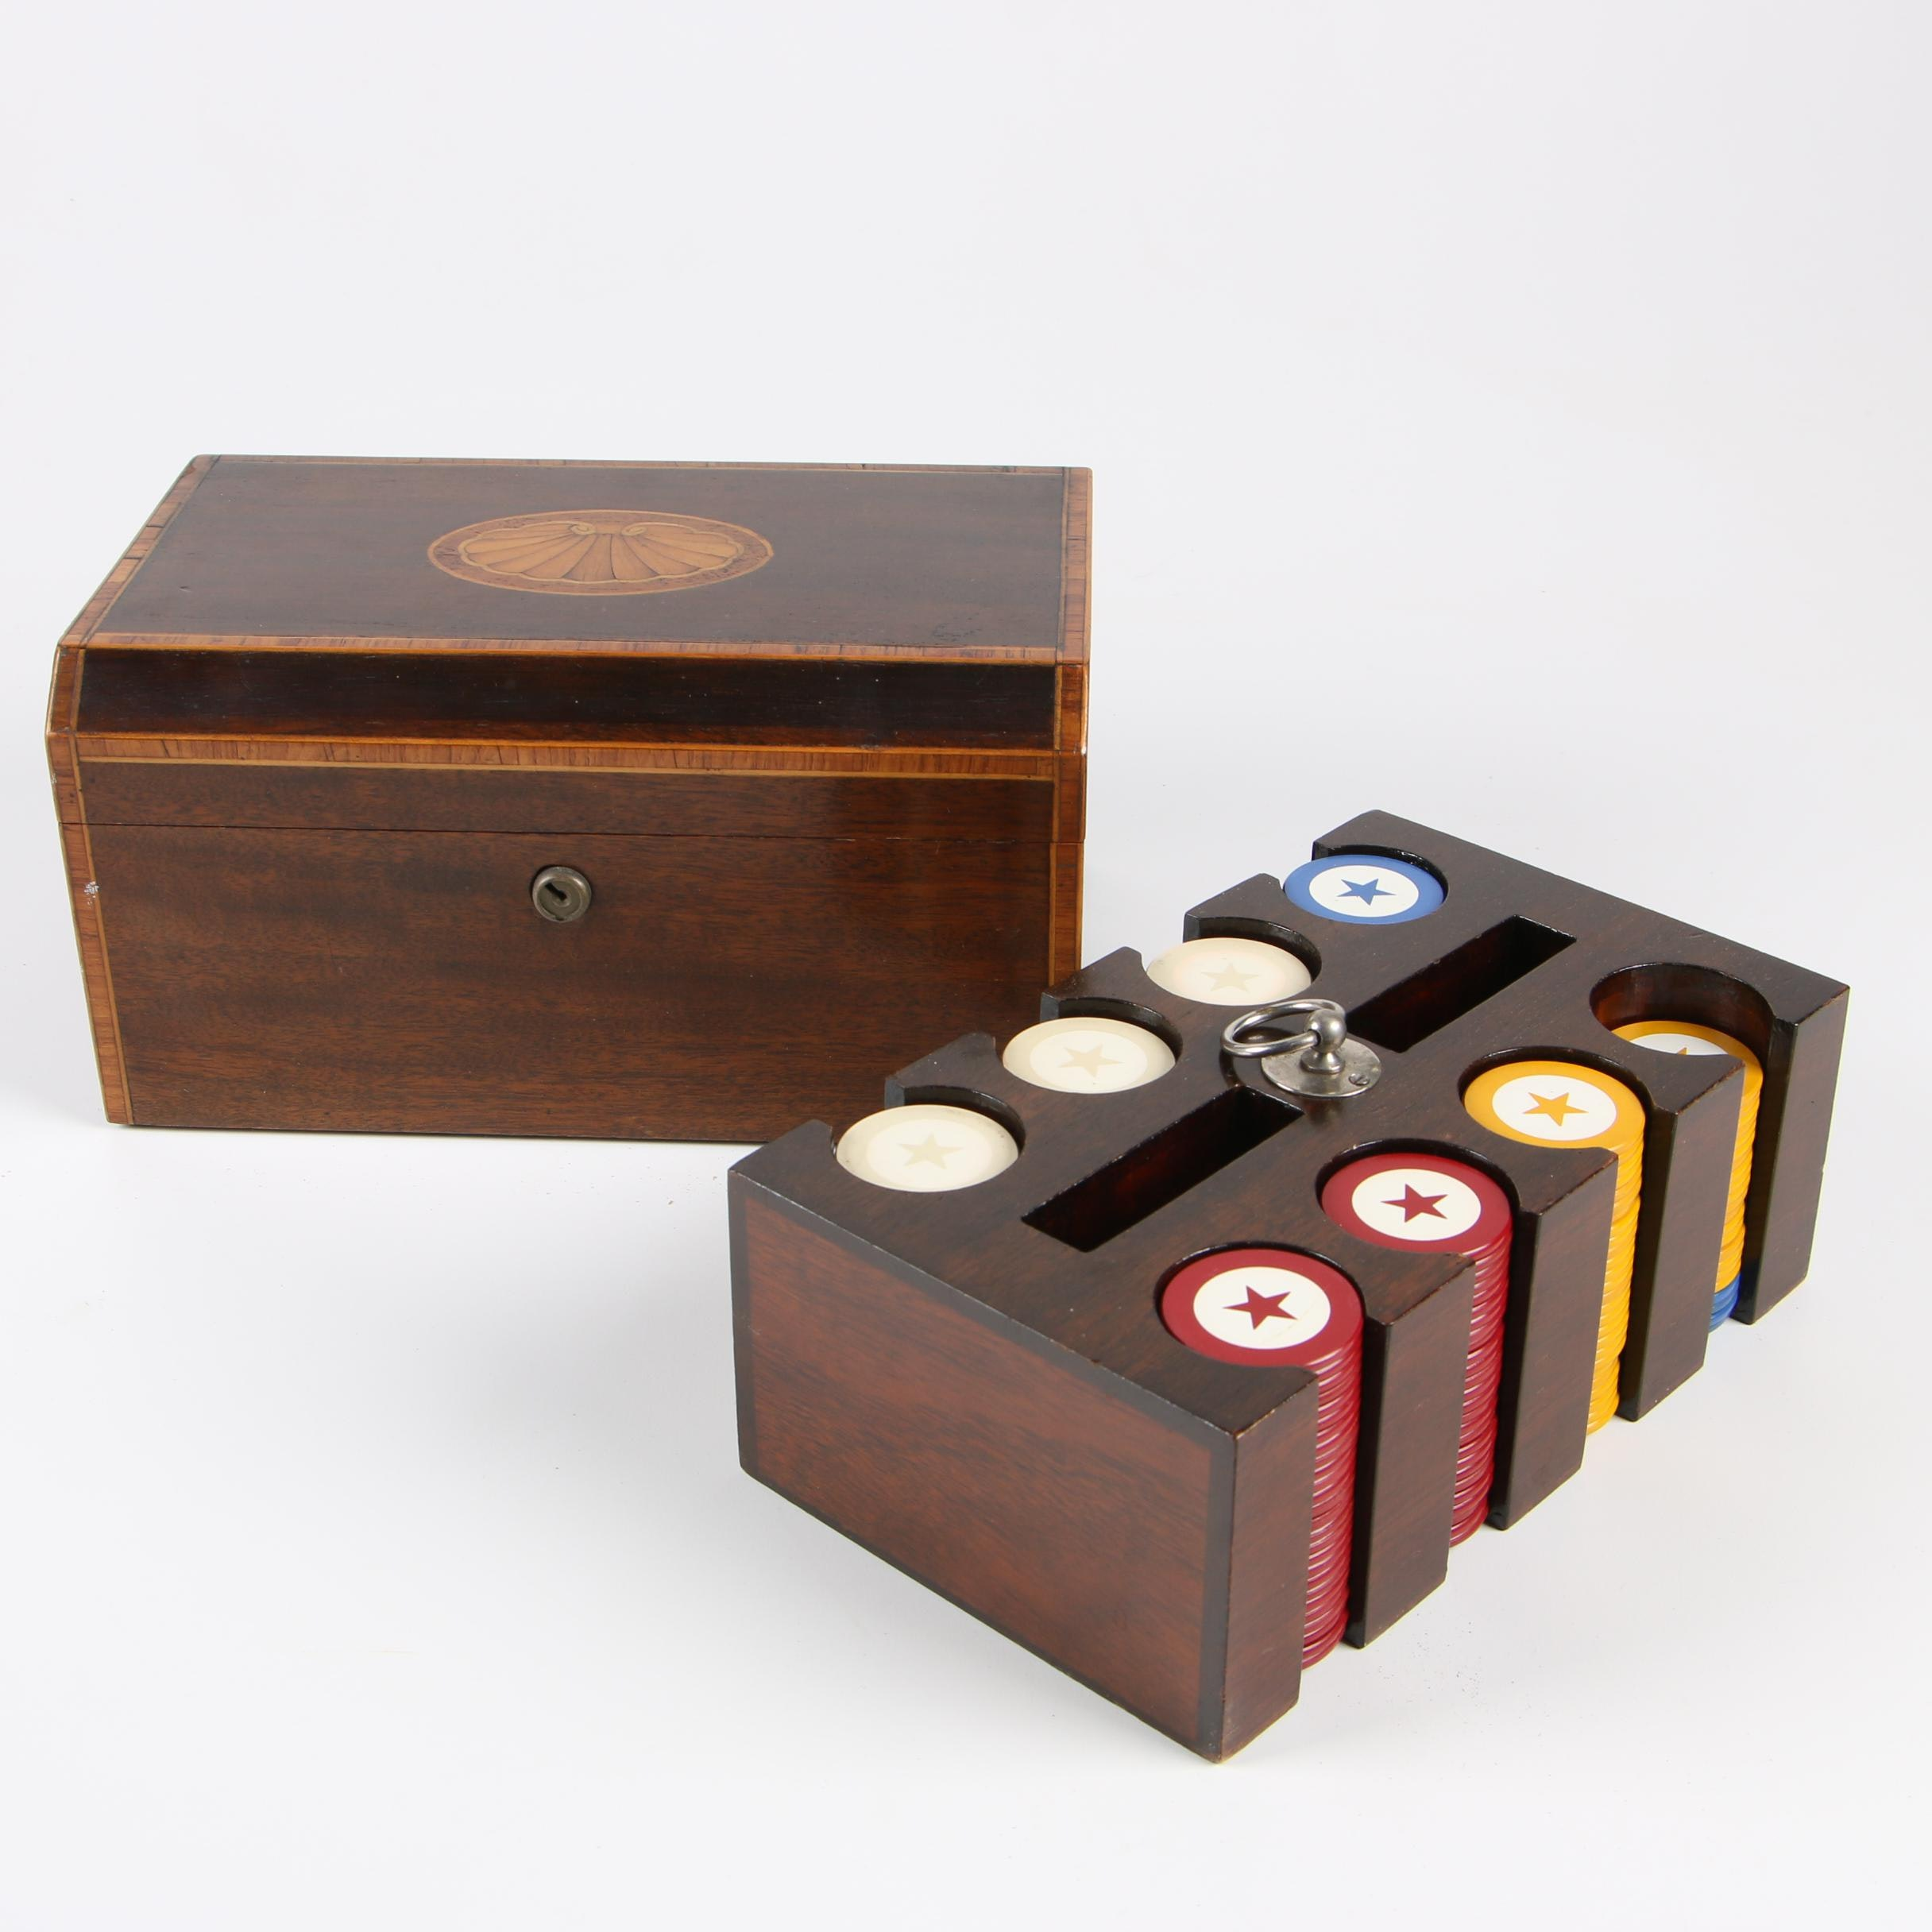 Regency Style Mahogany and Marquetry Poker Set, Late 19th/ Early 20th C.